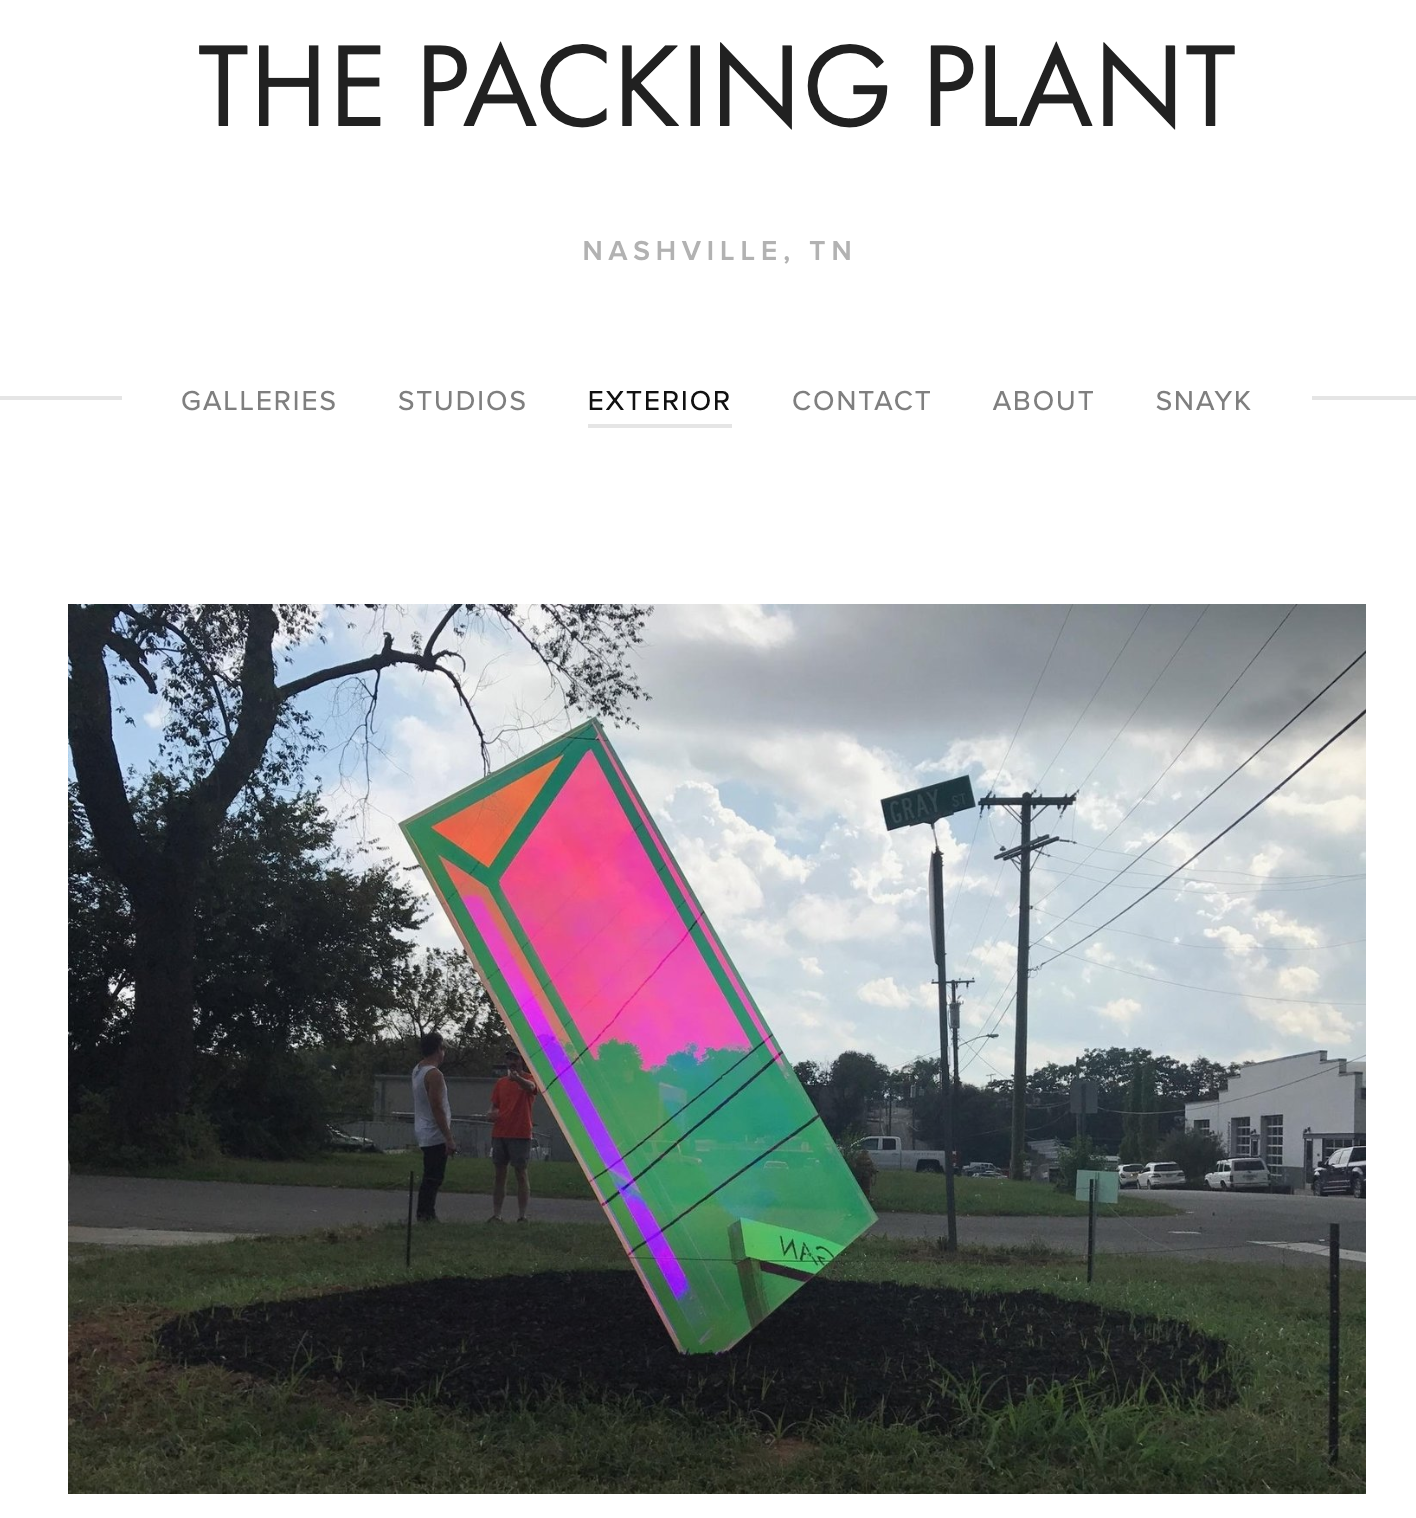 The Packing Plant